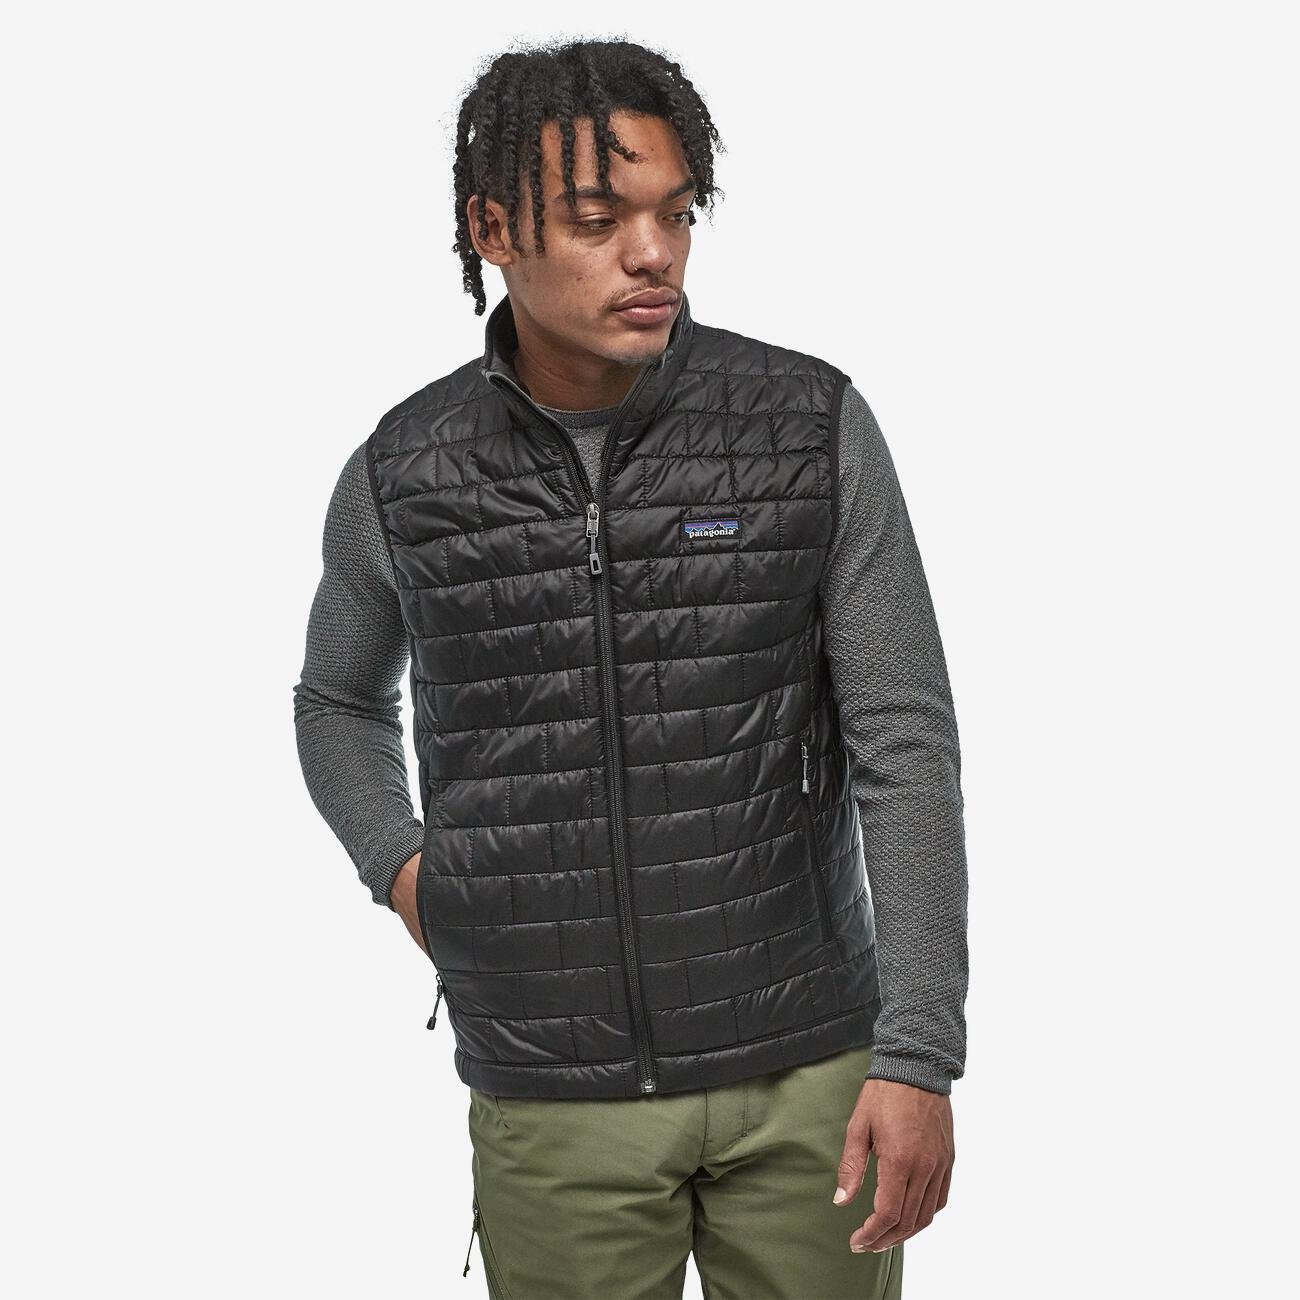 Ethical Workwear - Sustainable Corporate Clothing - Patagonia Nano Puff Vest